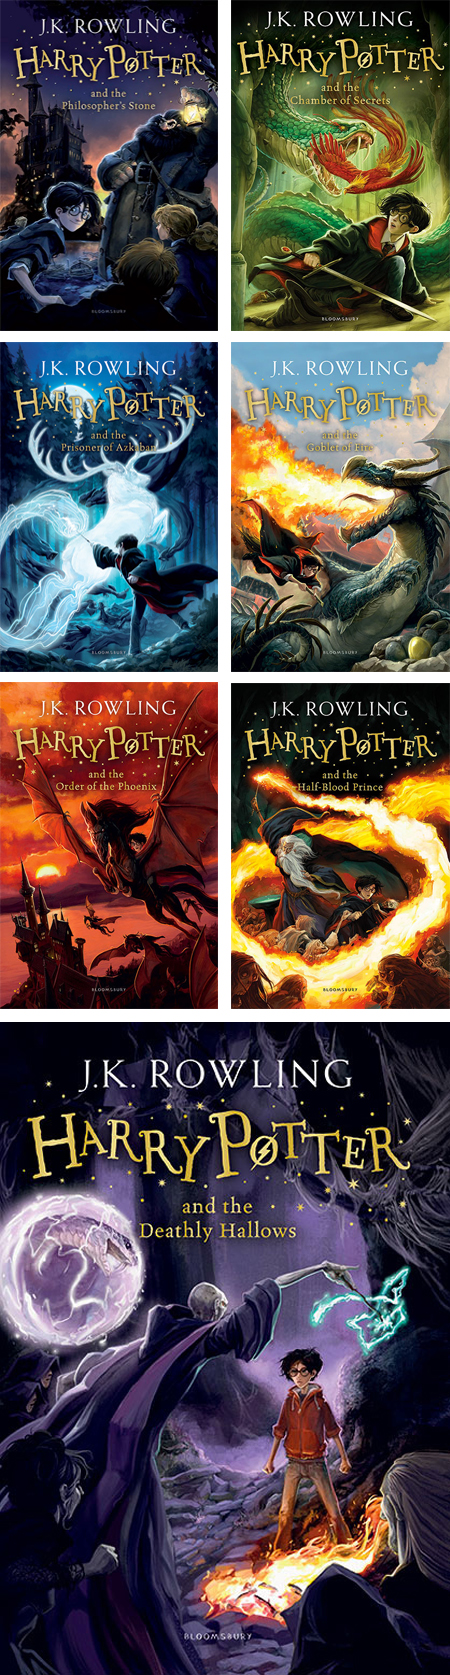 // Harry Potter Covers